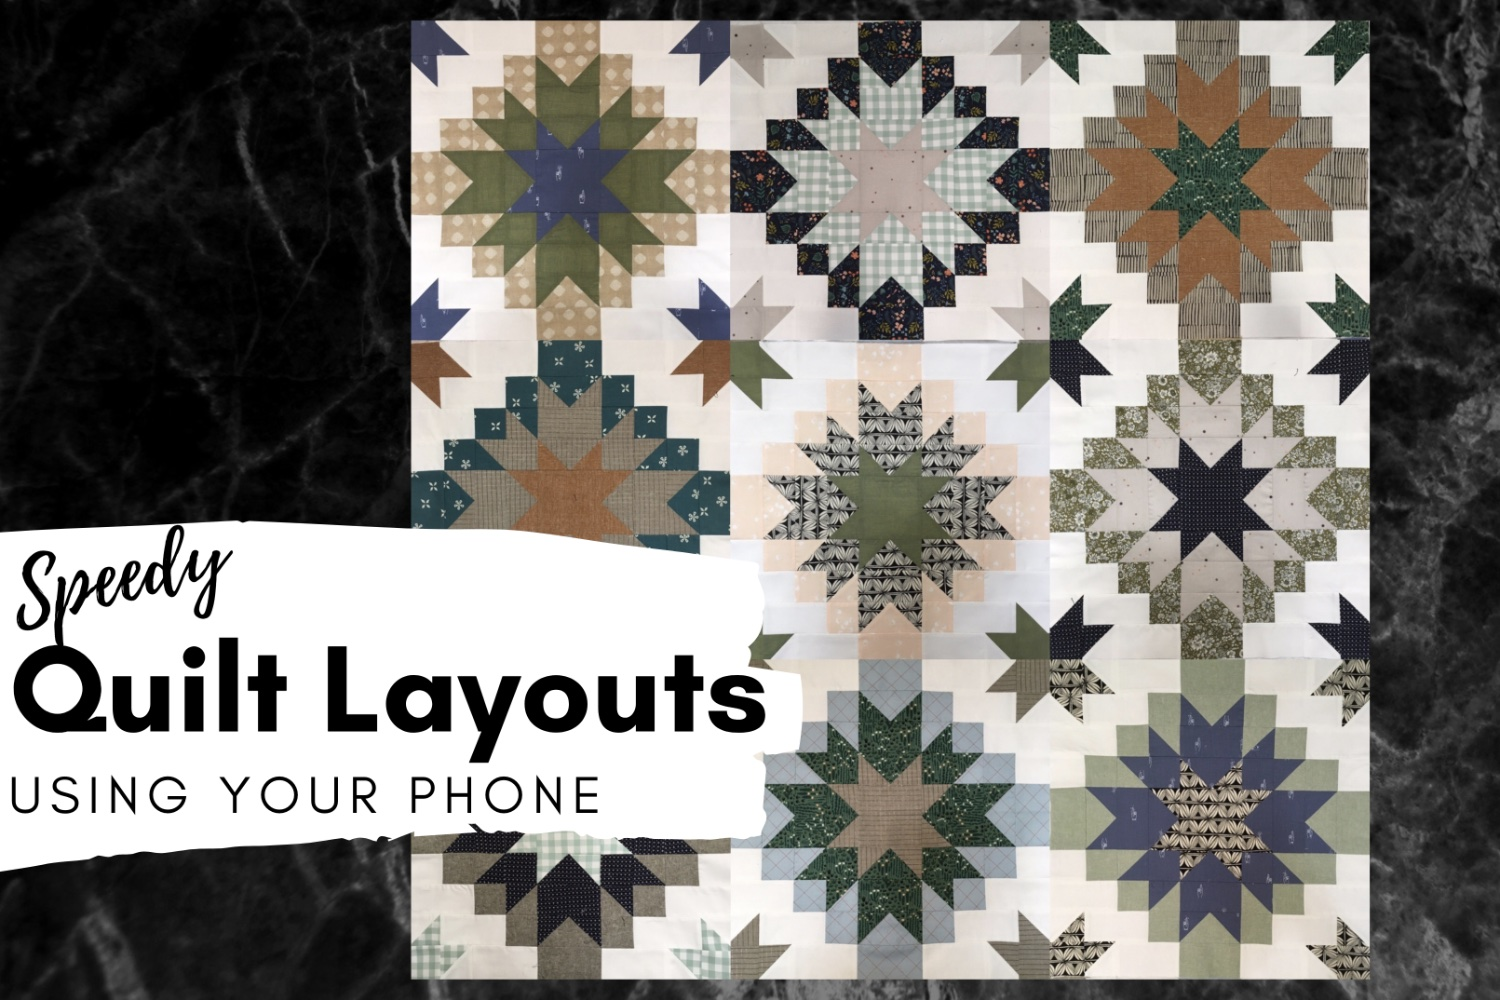 Speedy Quilt Layout | Using Your Phone!